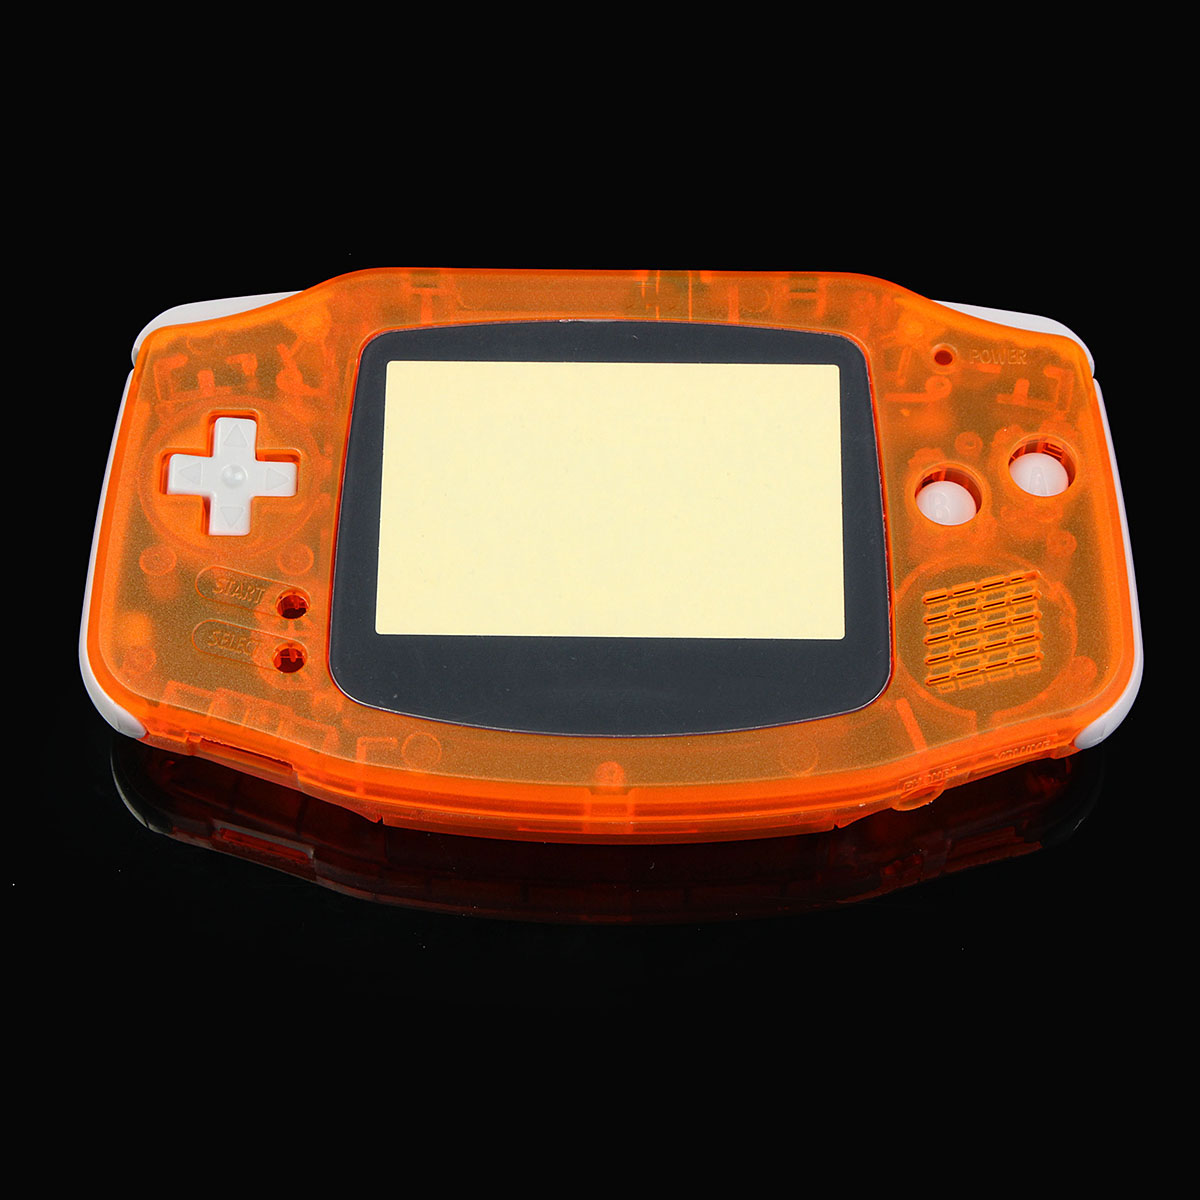 Transparent Orange Shell Housing Case Cover For Nintendo Game Boy Advance GBA